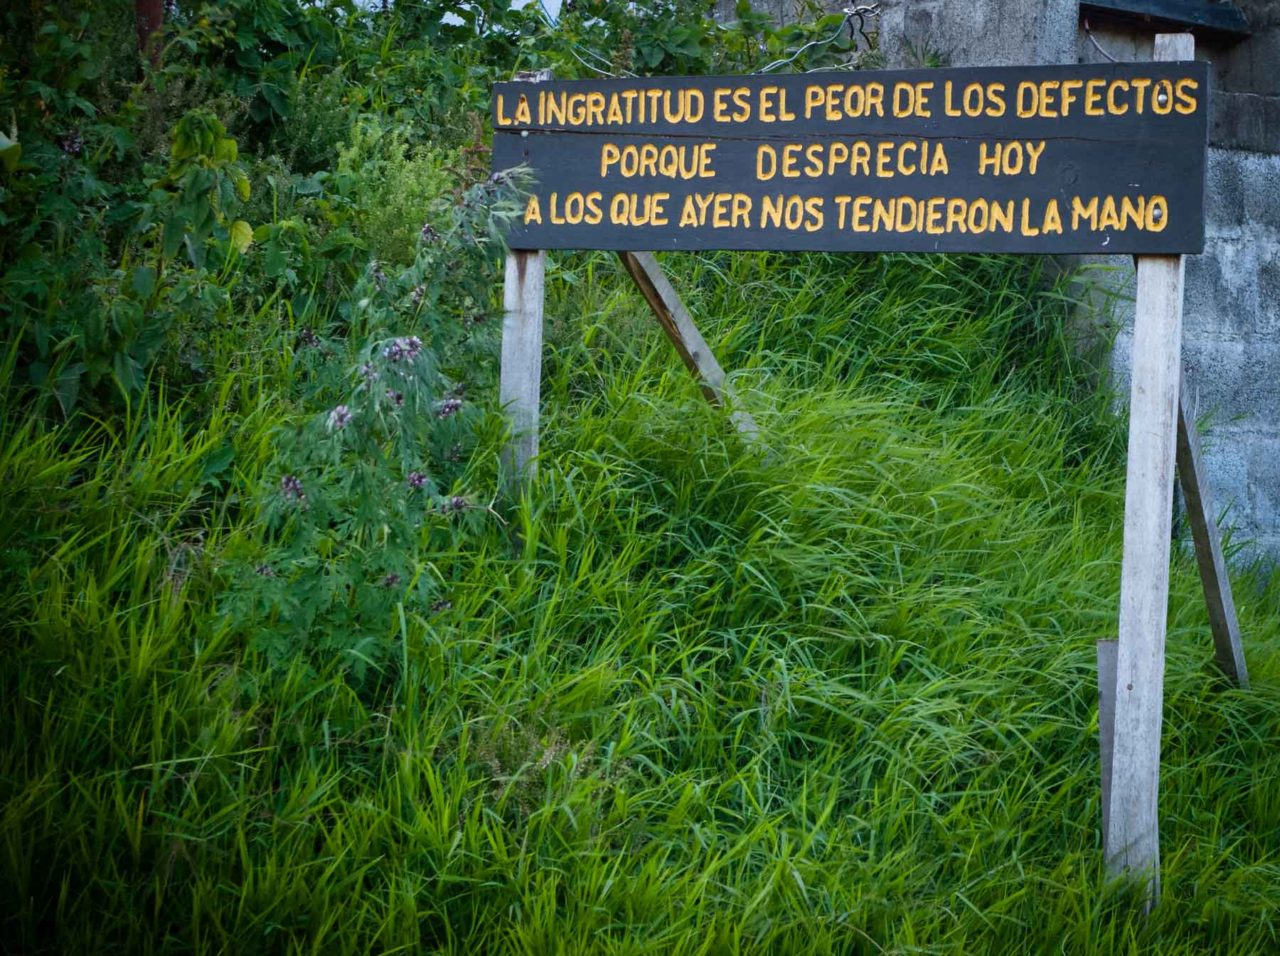 inspirational message painted on wooden sign along costa rican road